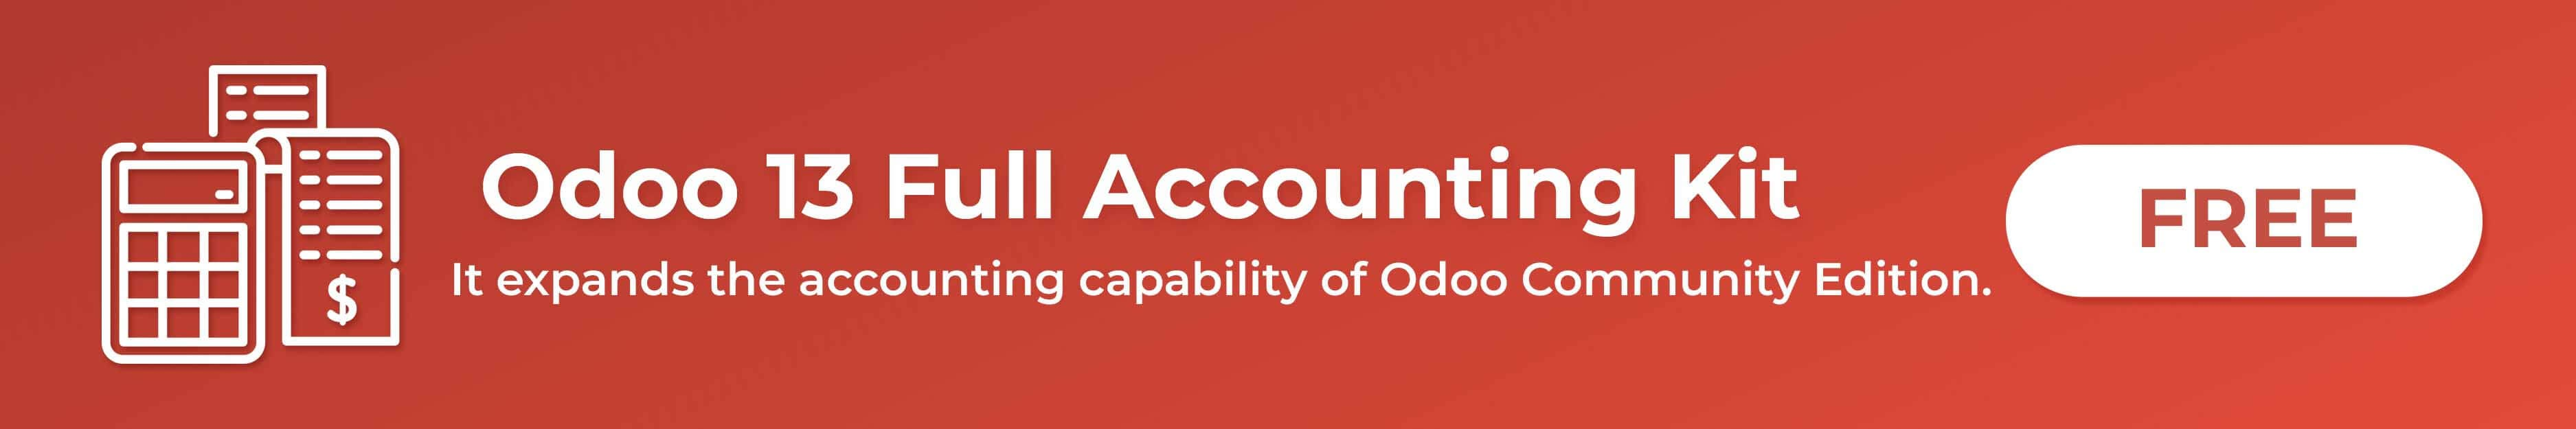 odoo 13 full accounting kit